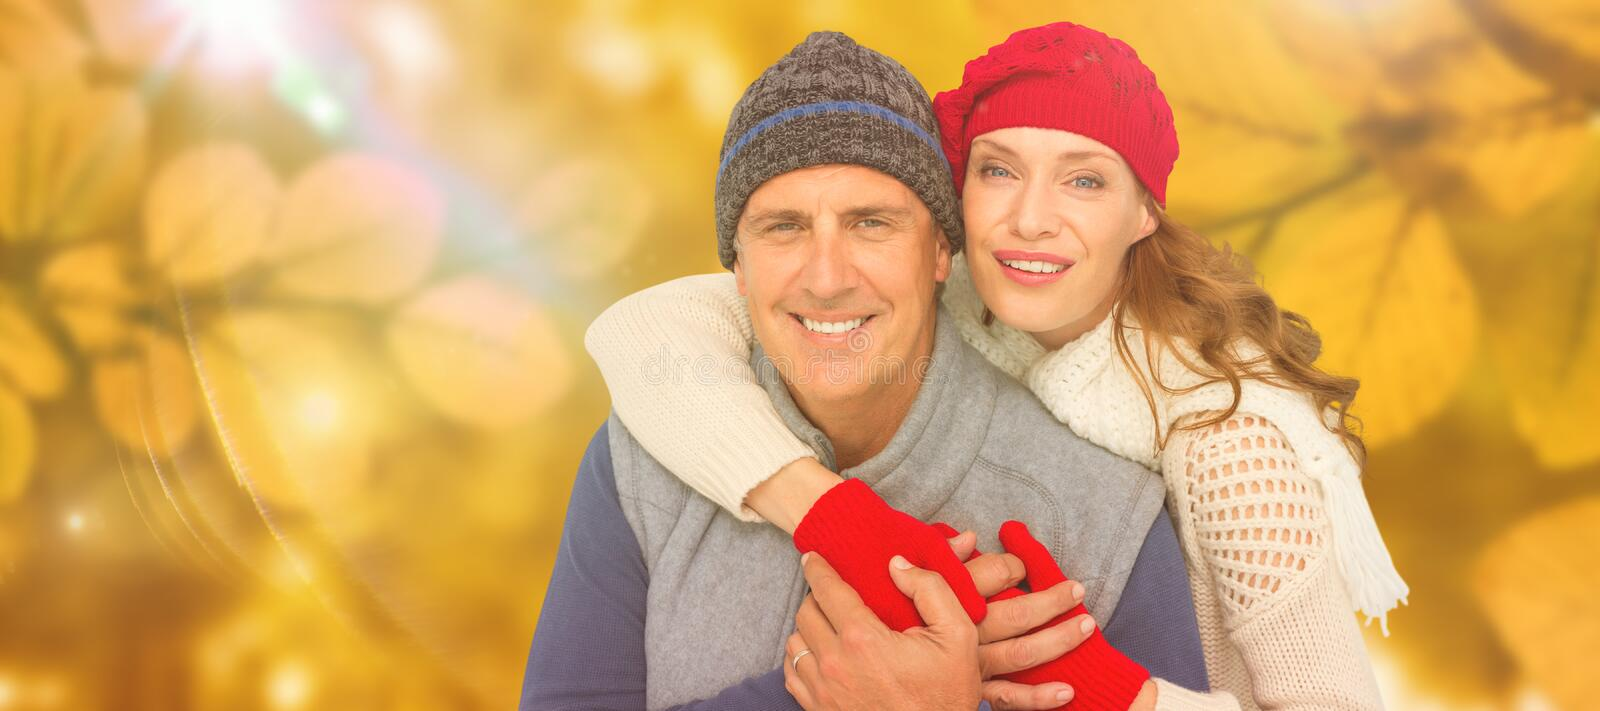 Composite image of happy couple in warm clothing. Happy couple in warm clothing against autumn scene stock image